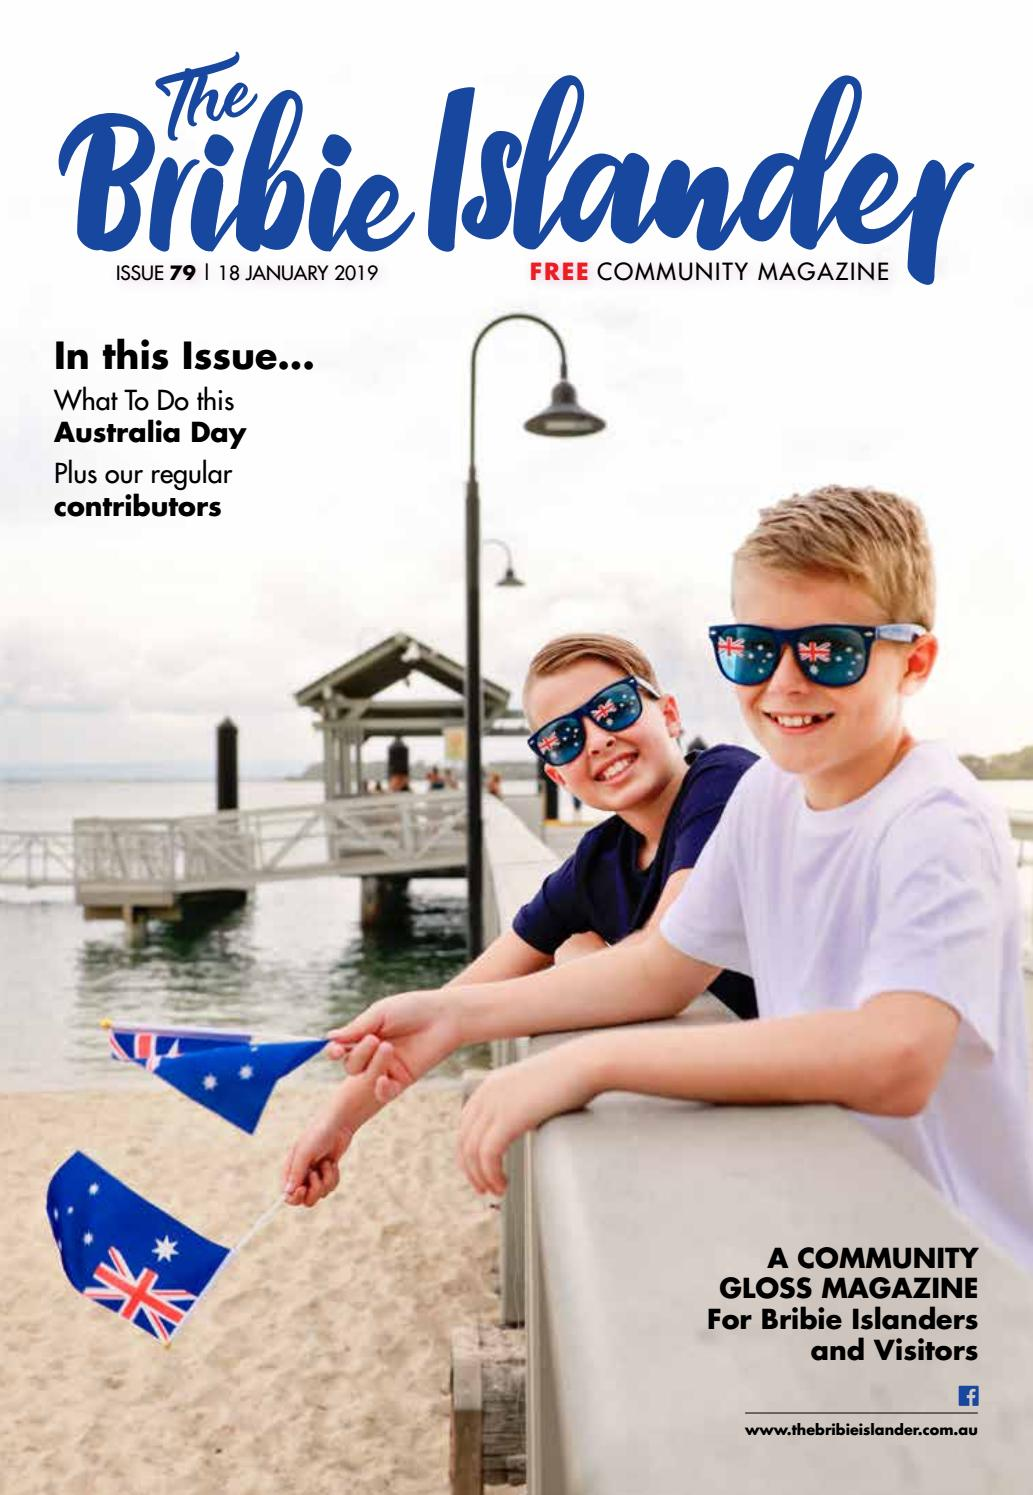 Aquaneo Wc Gloss Magazine Bribie Islander 2nd Edition Jan 18 2019 Issue 79